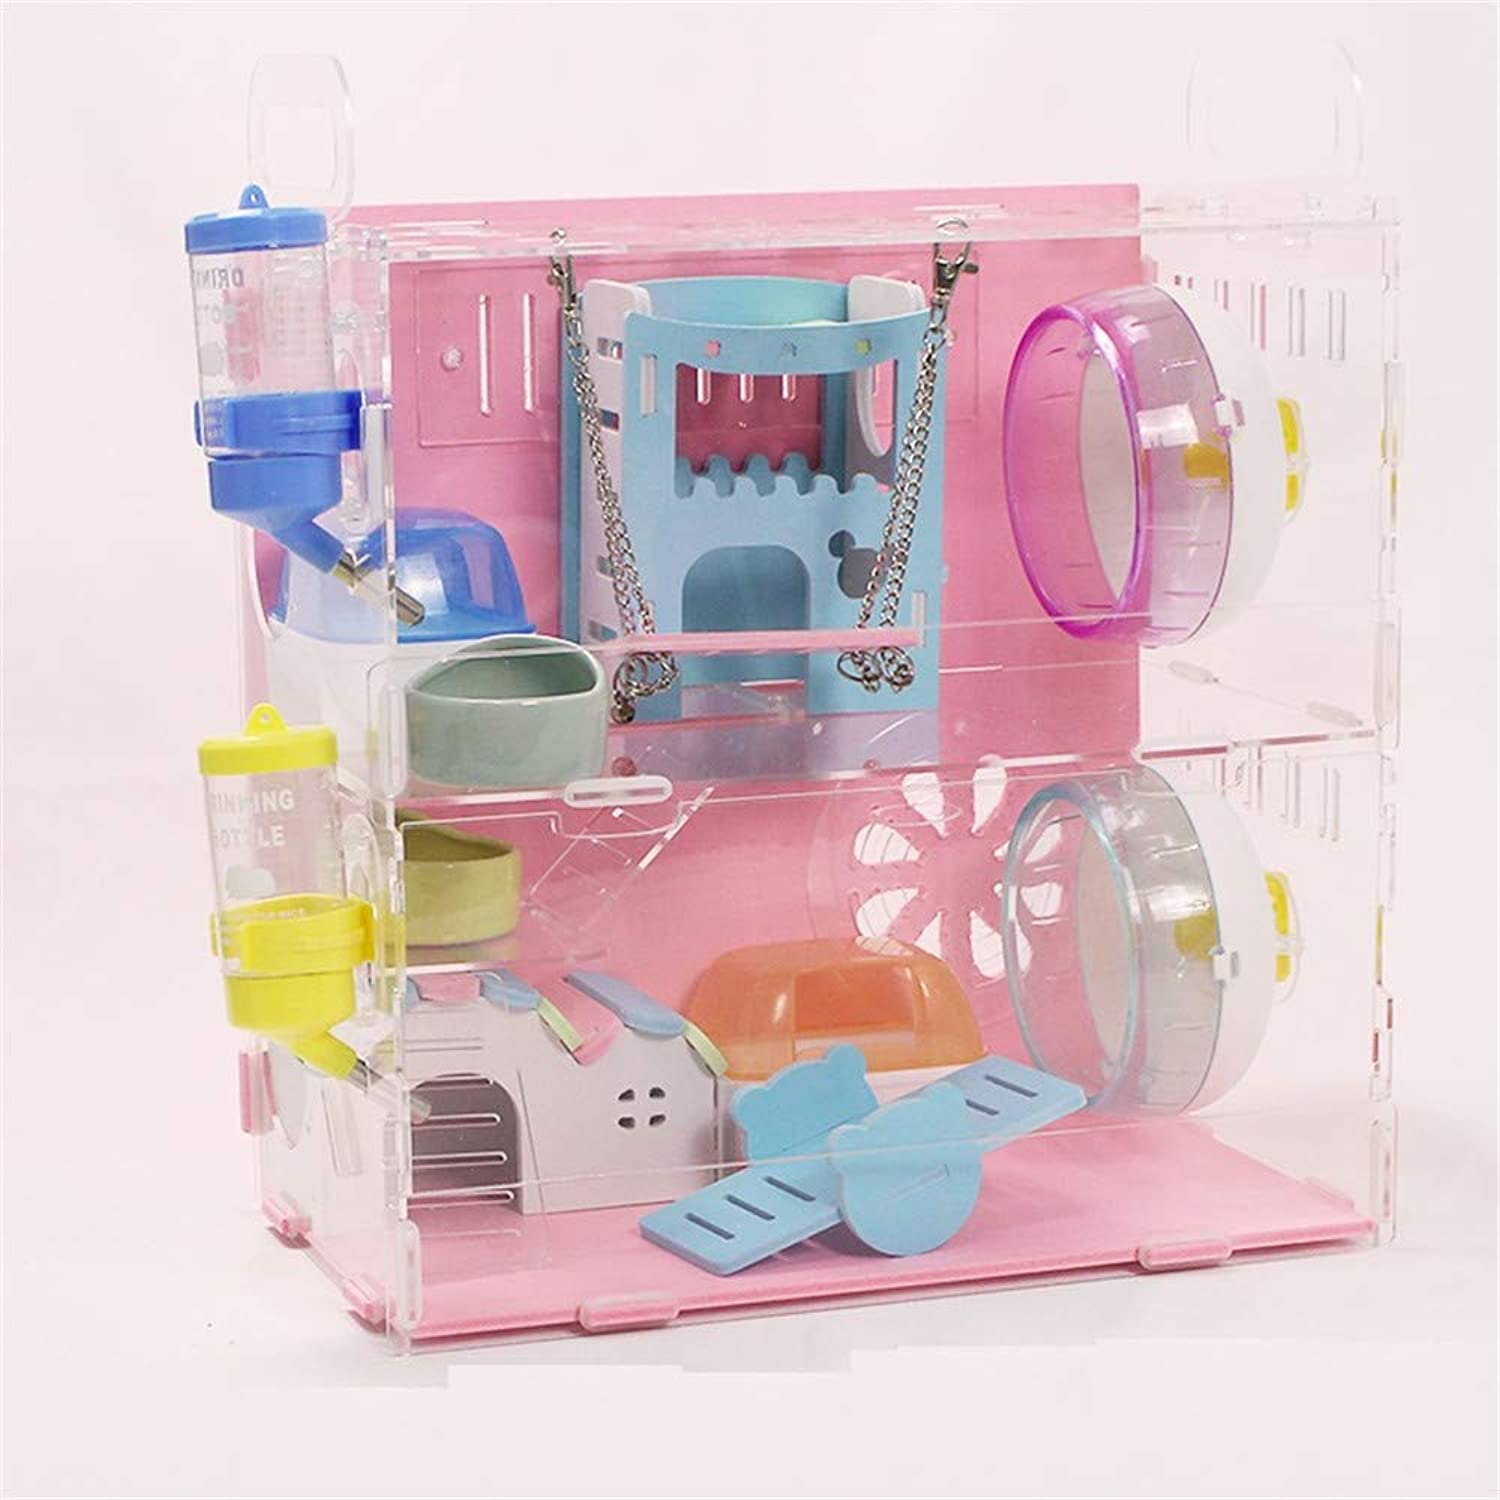 DRKJ Acrylic Hamster Cage Transparent Cage Double Layer Villa color Hamster